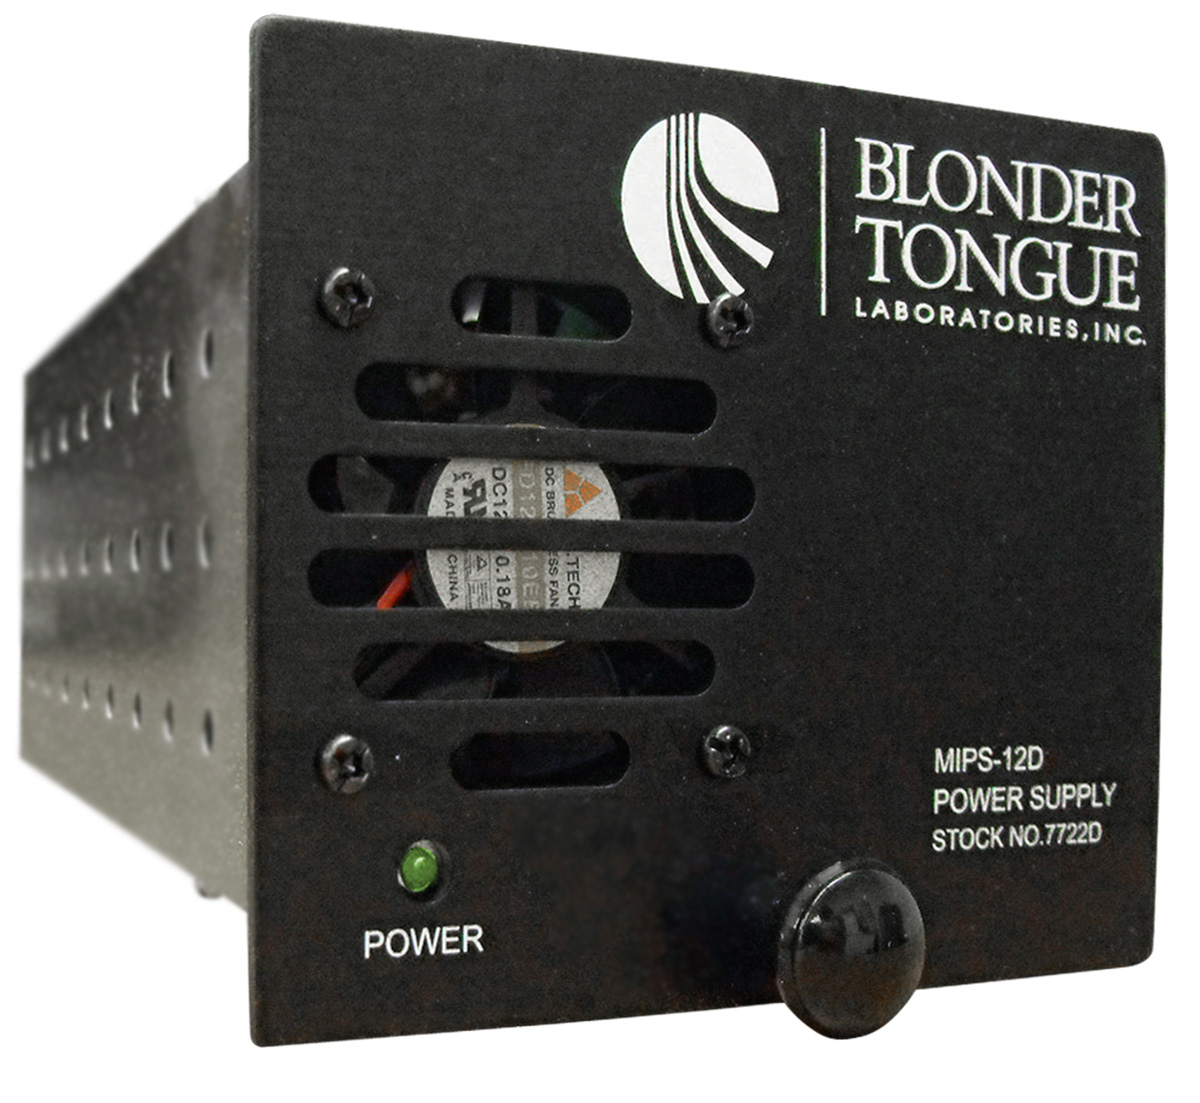 Blonder Tongue MIPS-12D Power Supply for HE Series MIPS-12D